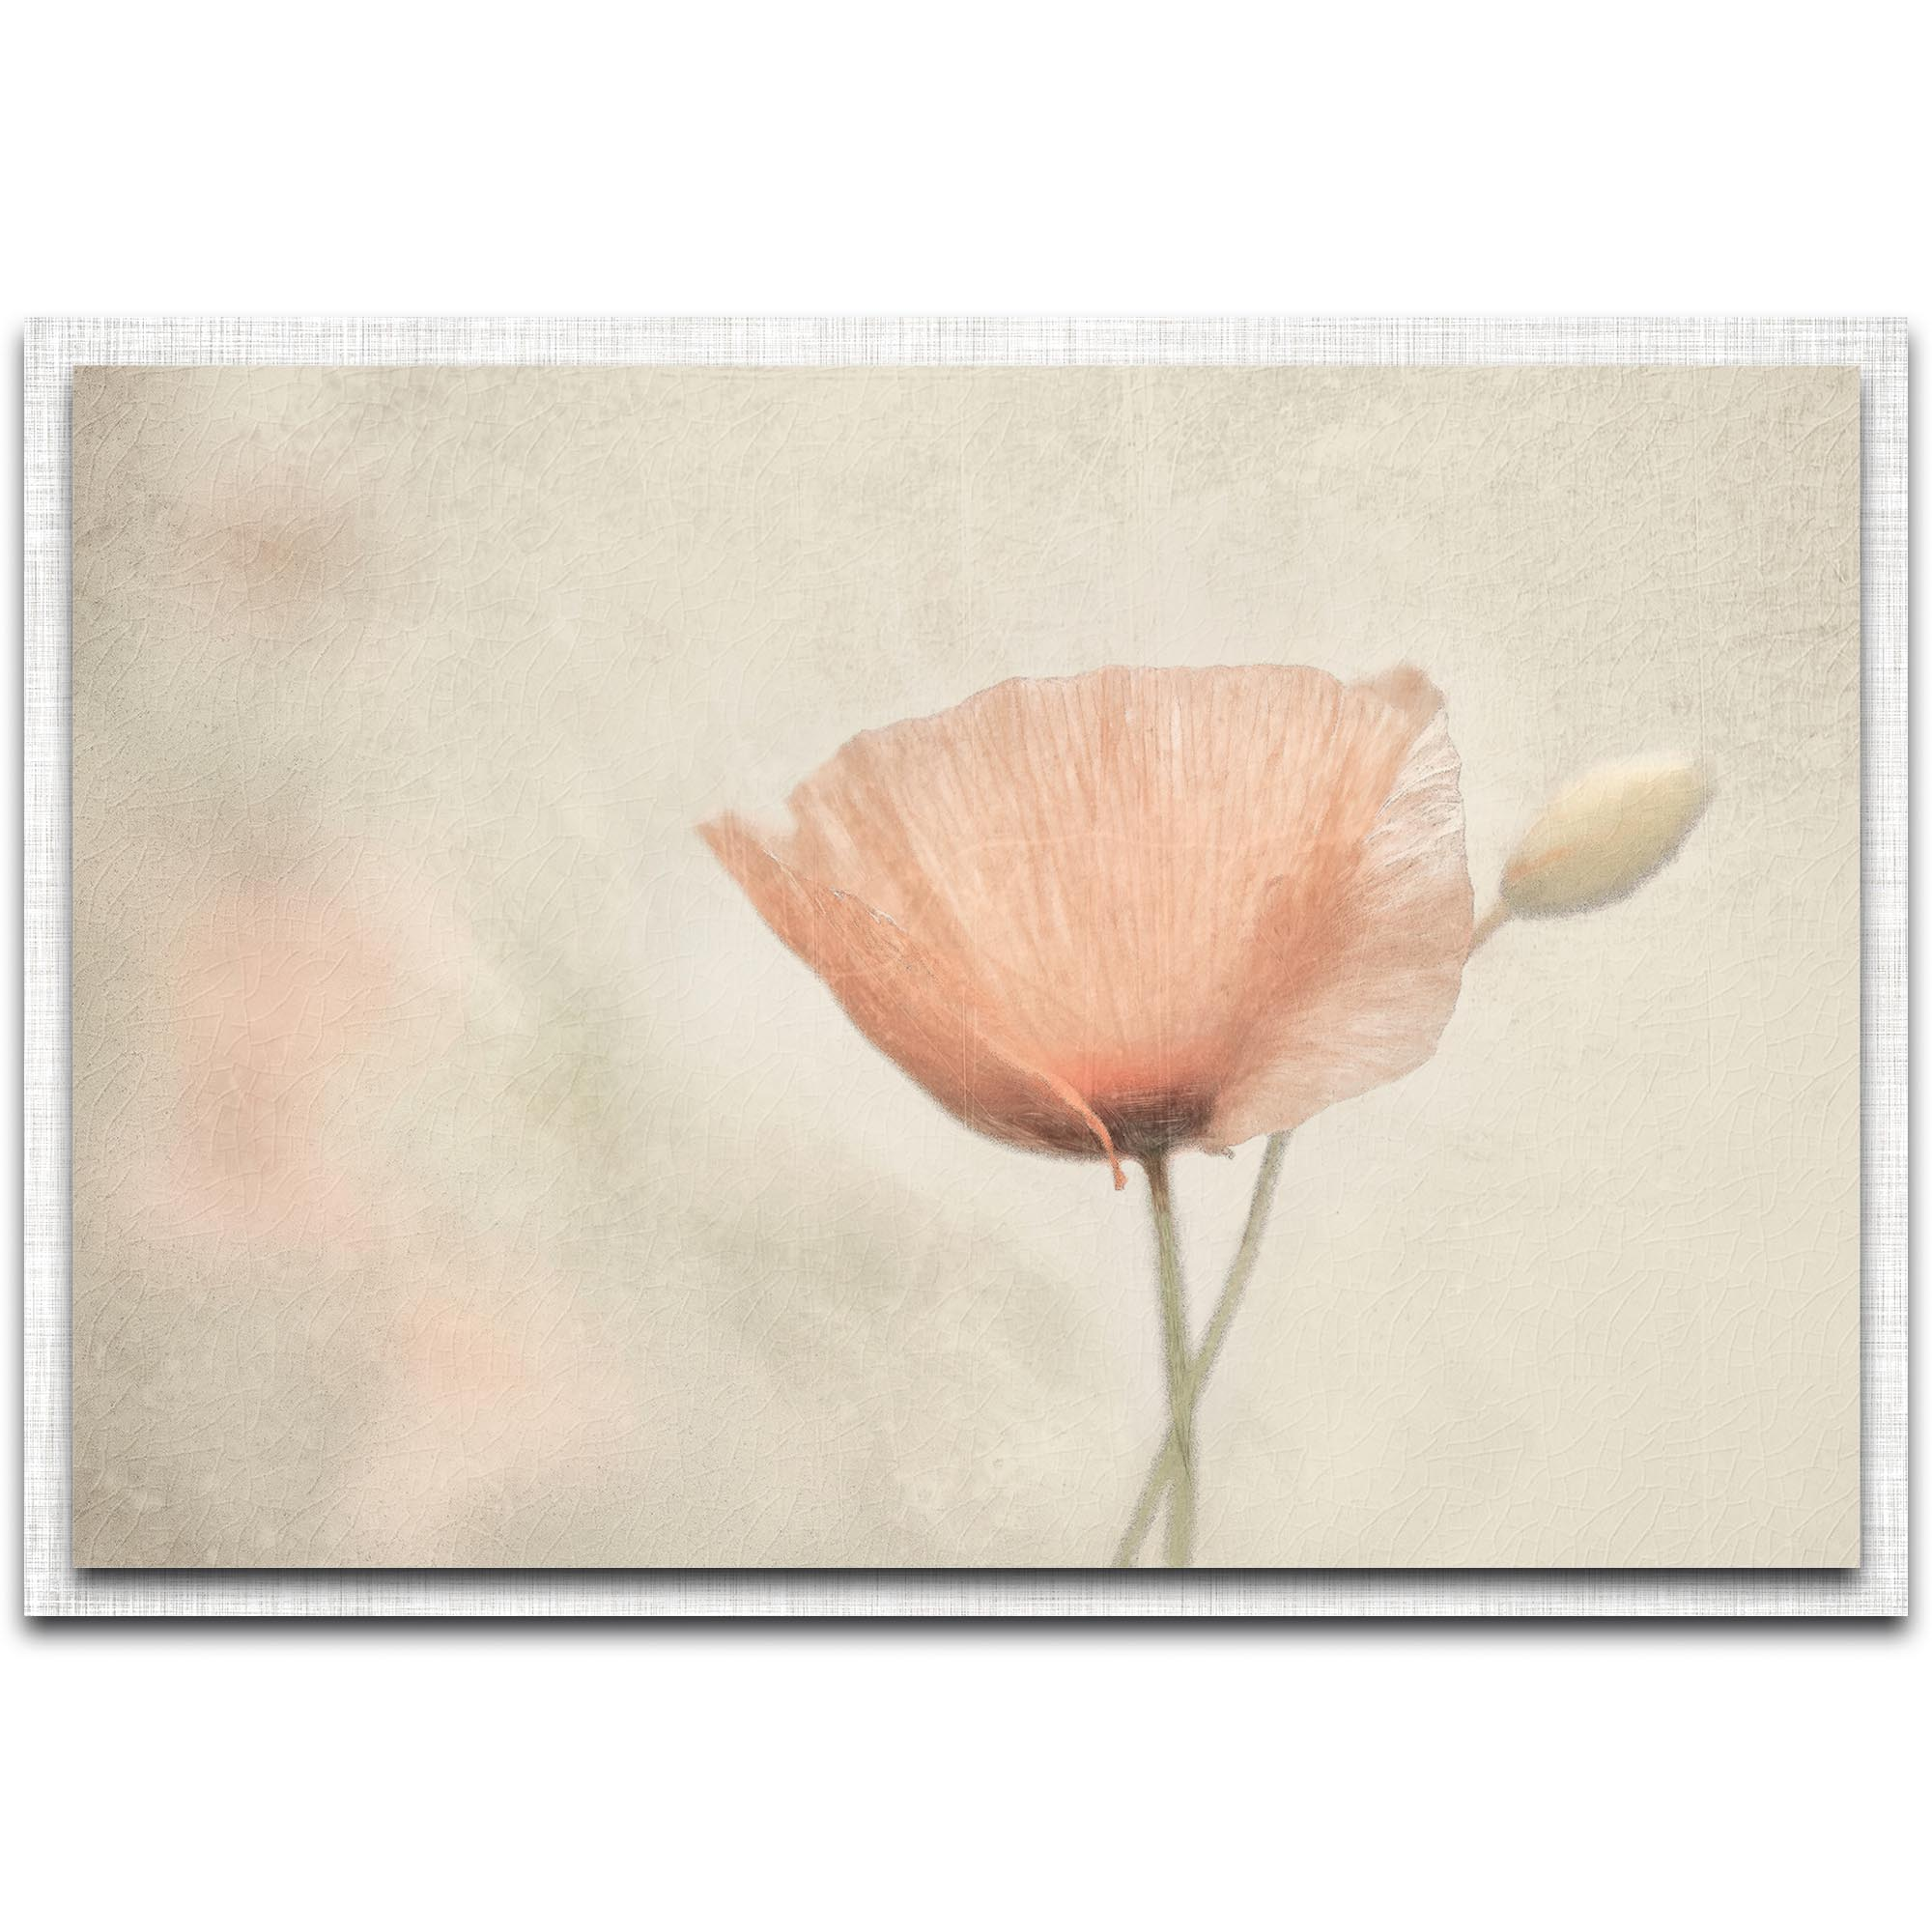 Gilbert Claes 'Jewel of Nature' 32in x 22in Modern Farmhouse Floral on Metal